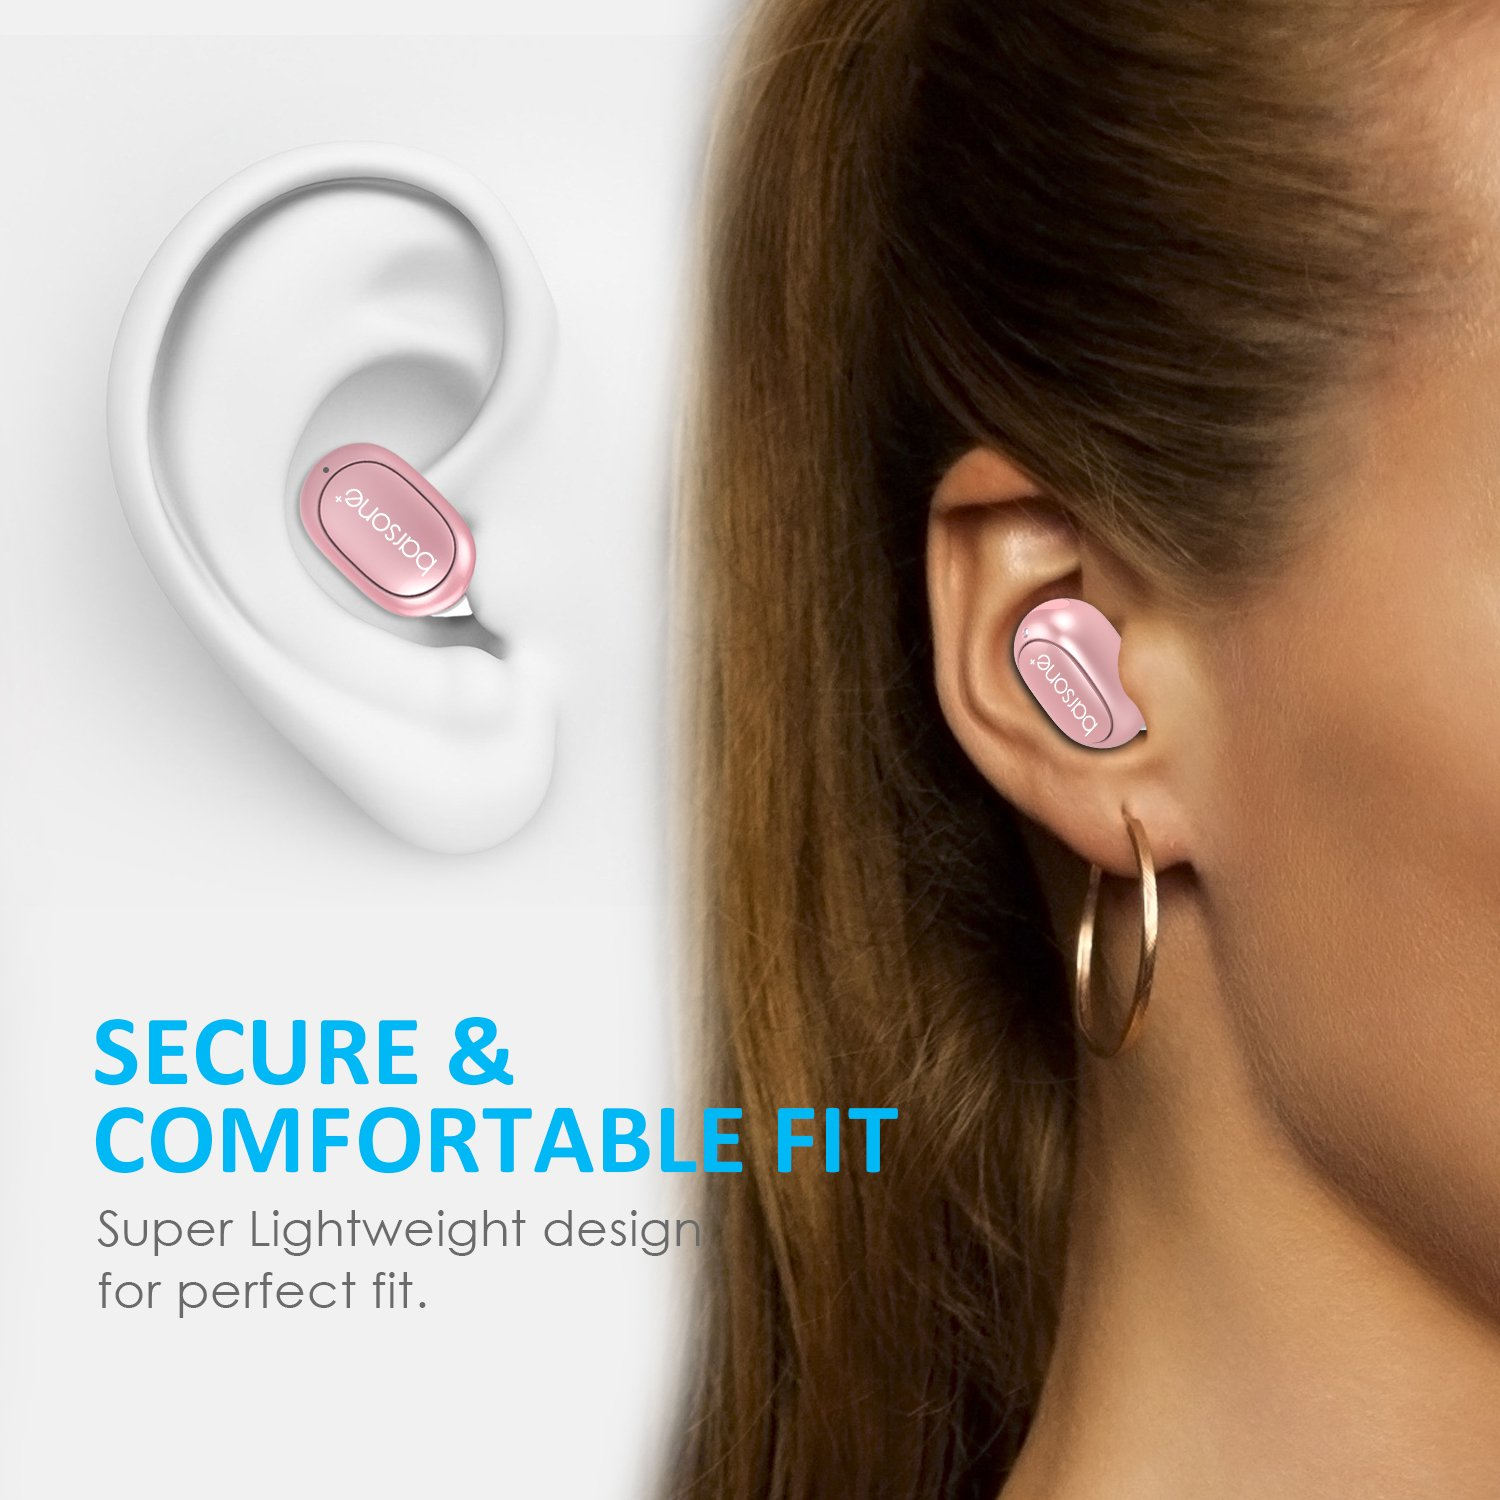 Bluetooth Earbud, Barsone Mini Bluetooth Earpiece Wireless Earphones Handsfree with Mic, In-ear Mini Bluetooth Ultra Light Headphones For IPhone Samsung and Any Other Smartphones (Rose gold)